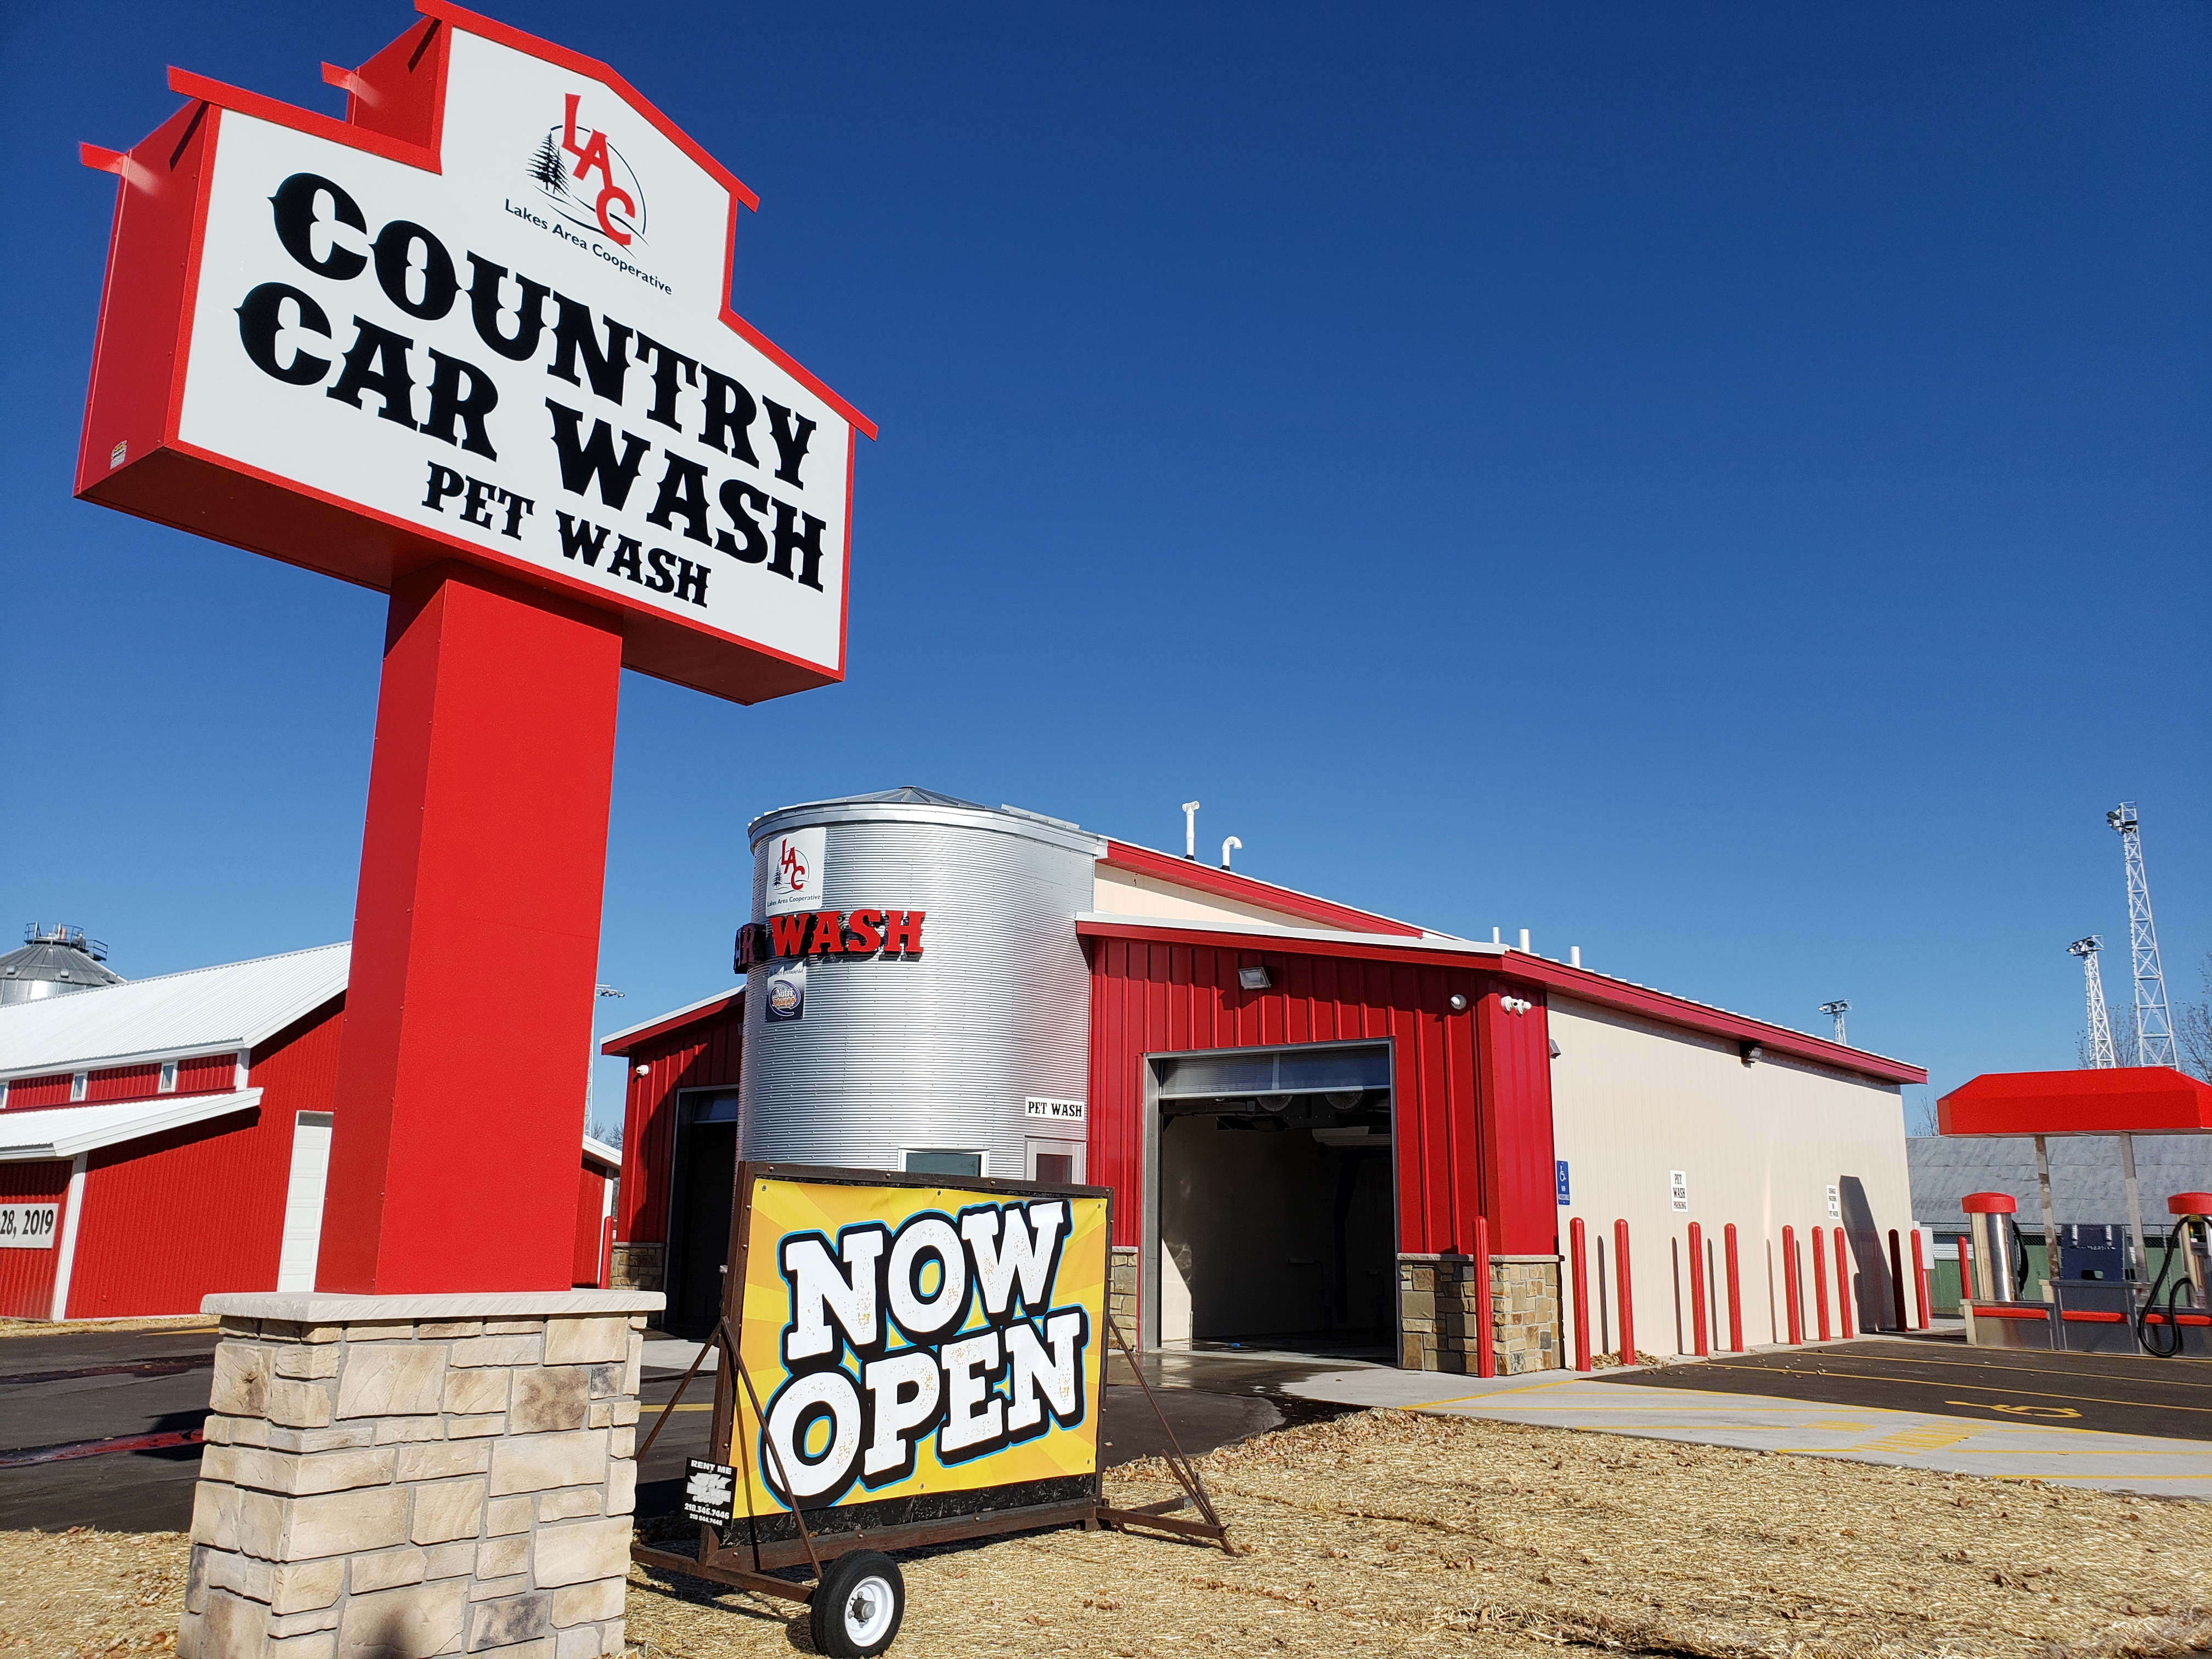 Lac Country Car Wash Perham Mn